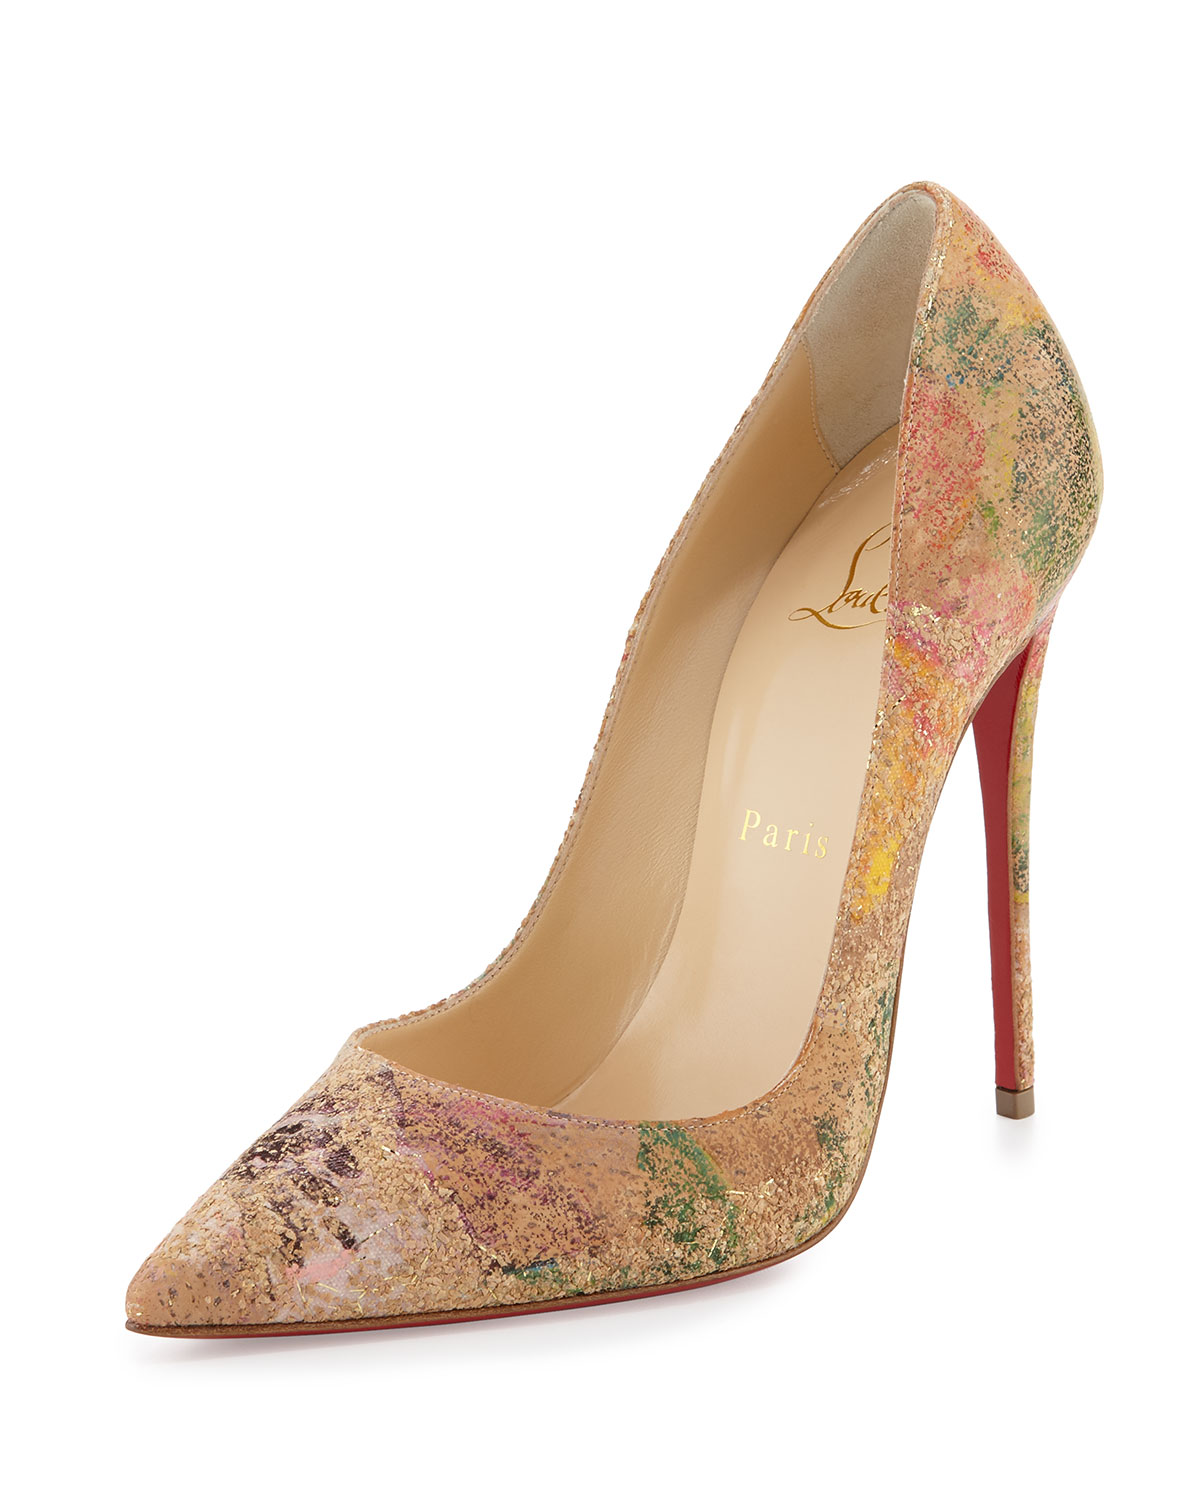 Christian Louboutin So Kate Blooming-Cork 120mm Red Sole Pump, Multi Colors, Women's, Size: 39.5B/9.5B